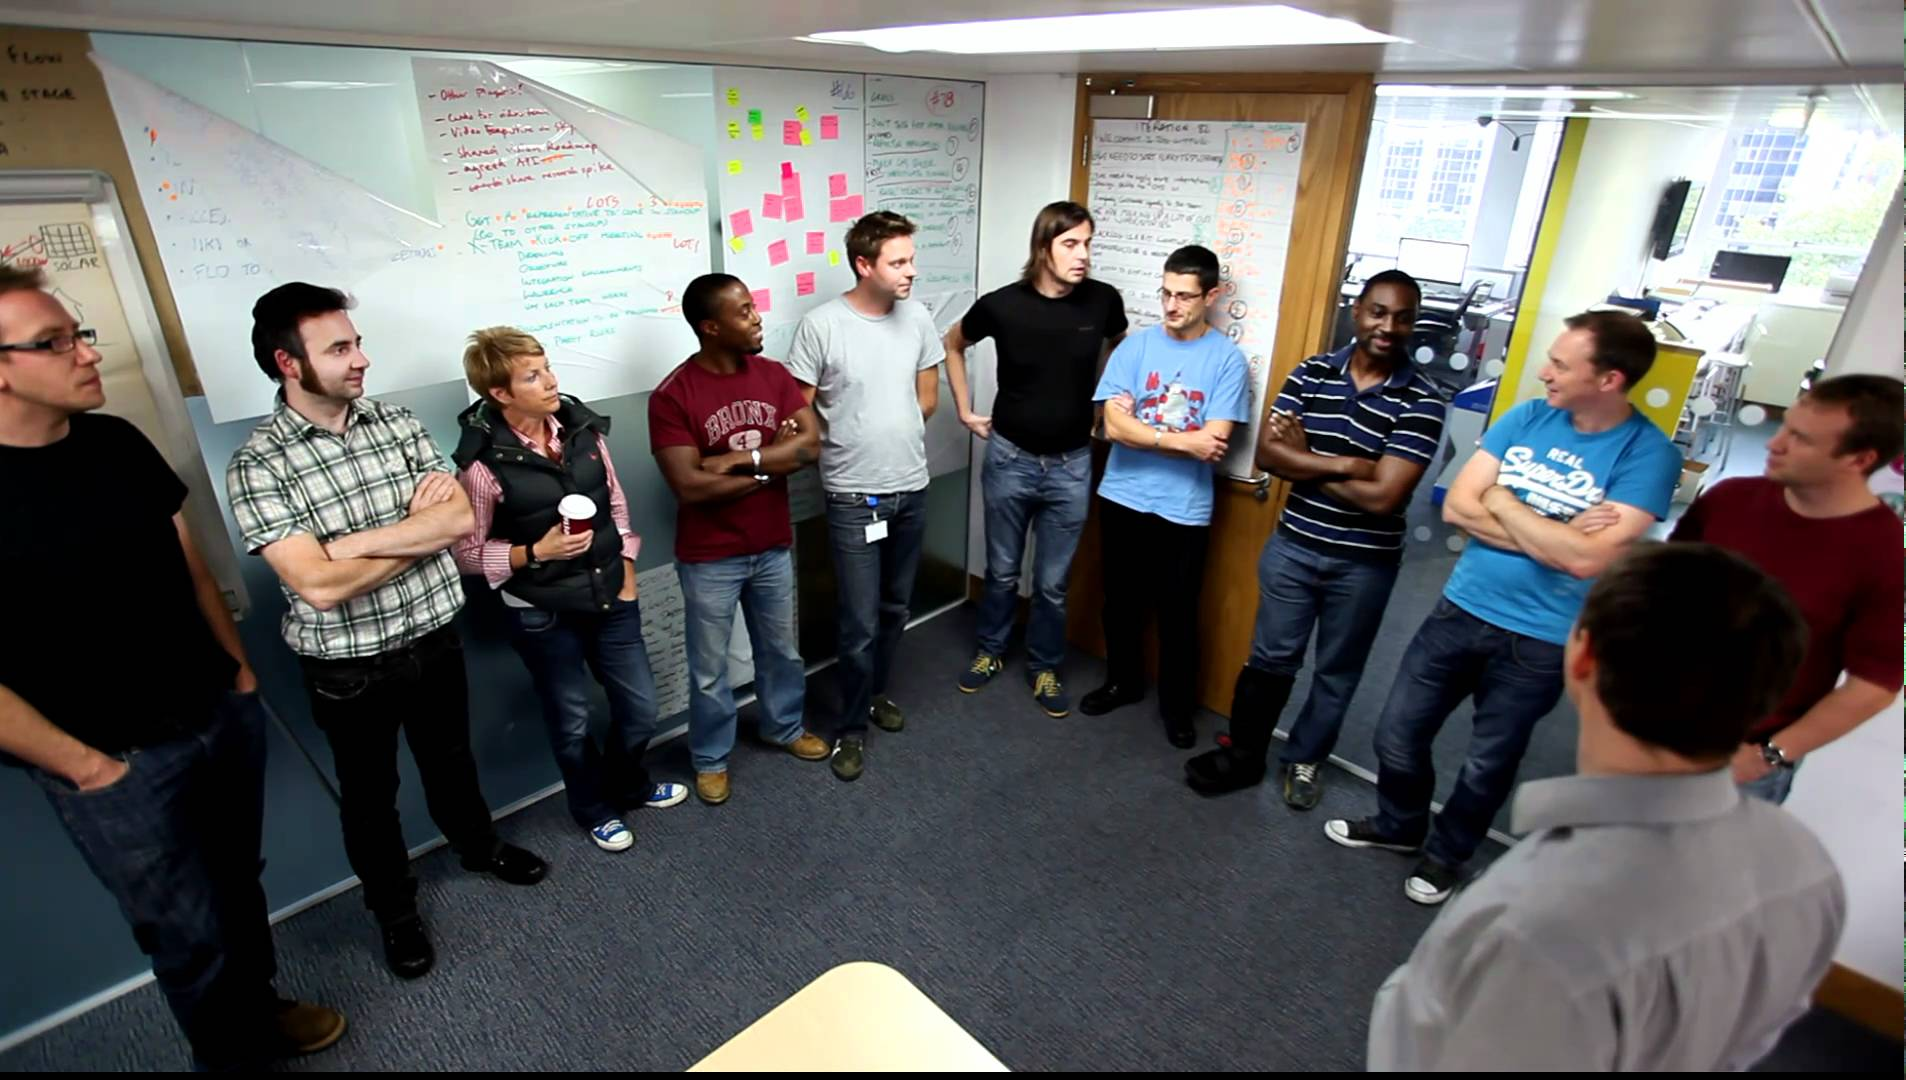 Scrum Stand-up Worst Practices